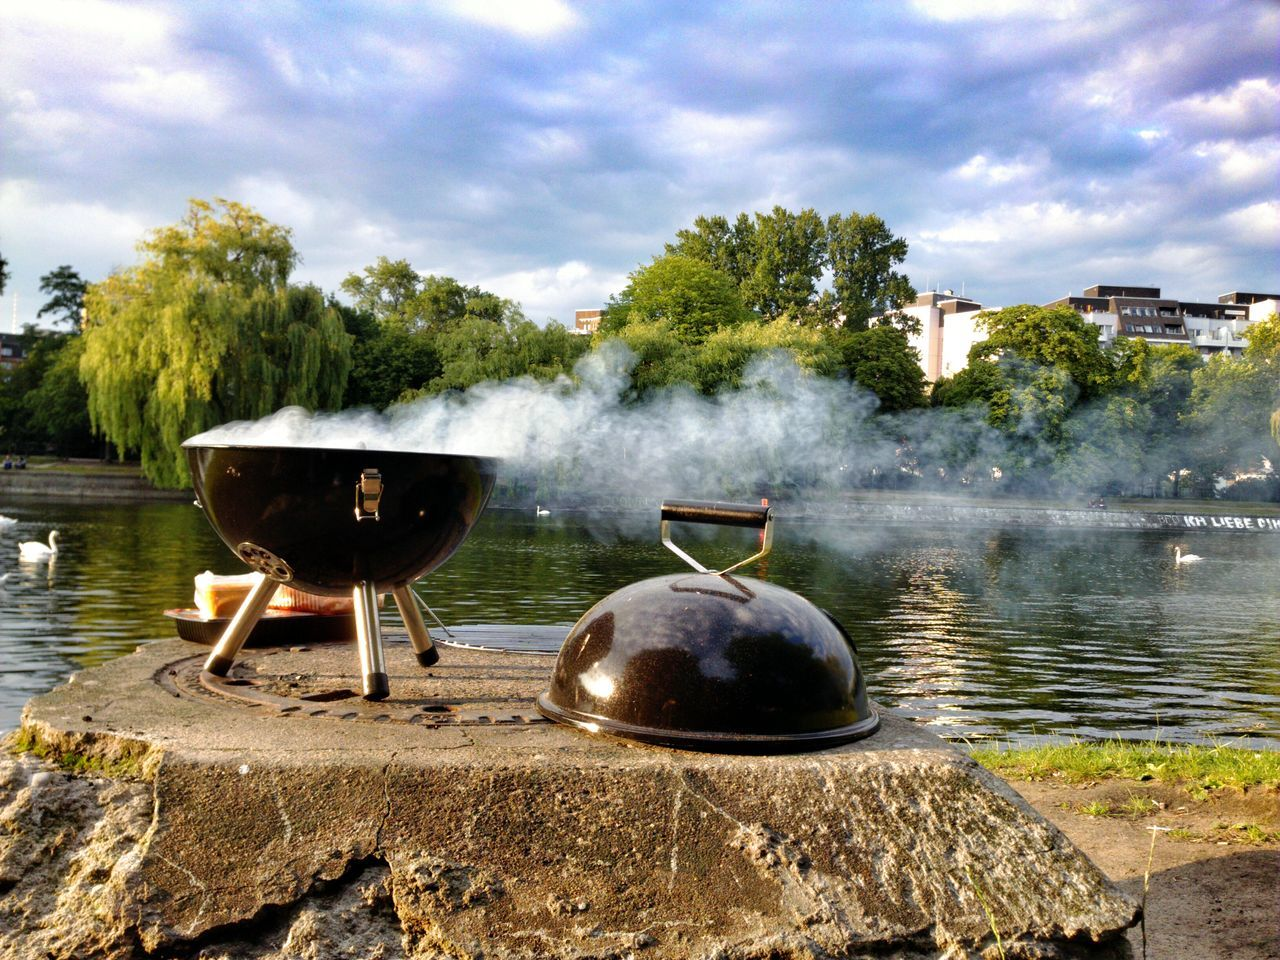 Close-up of barbecue against calm lake